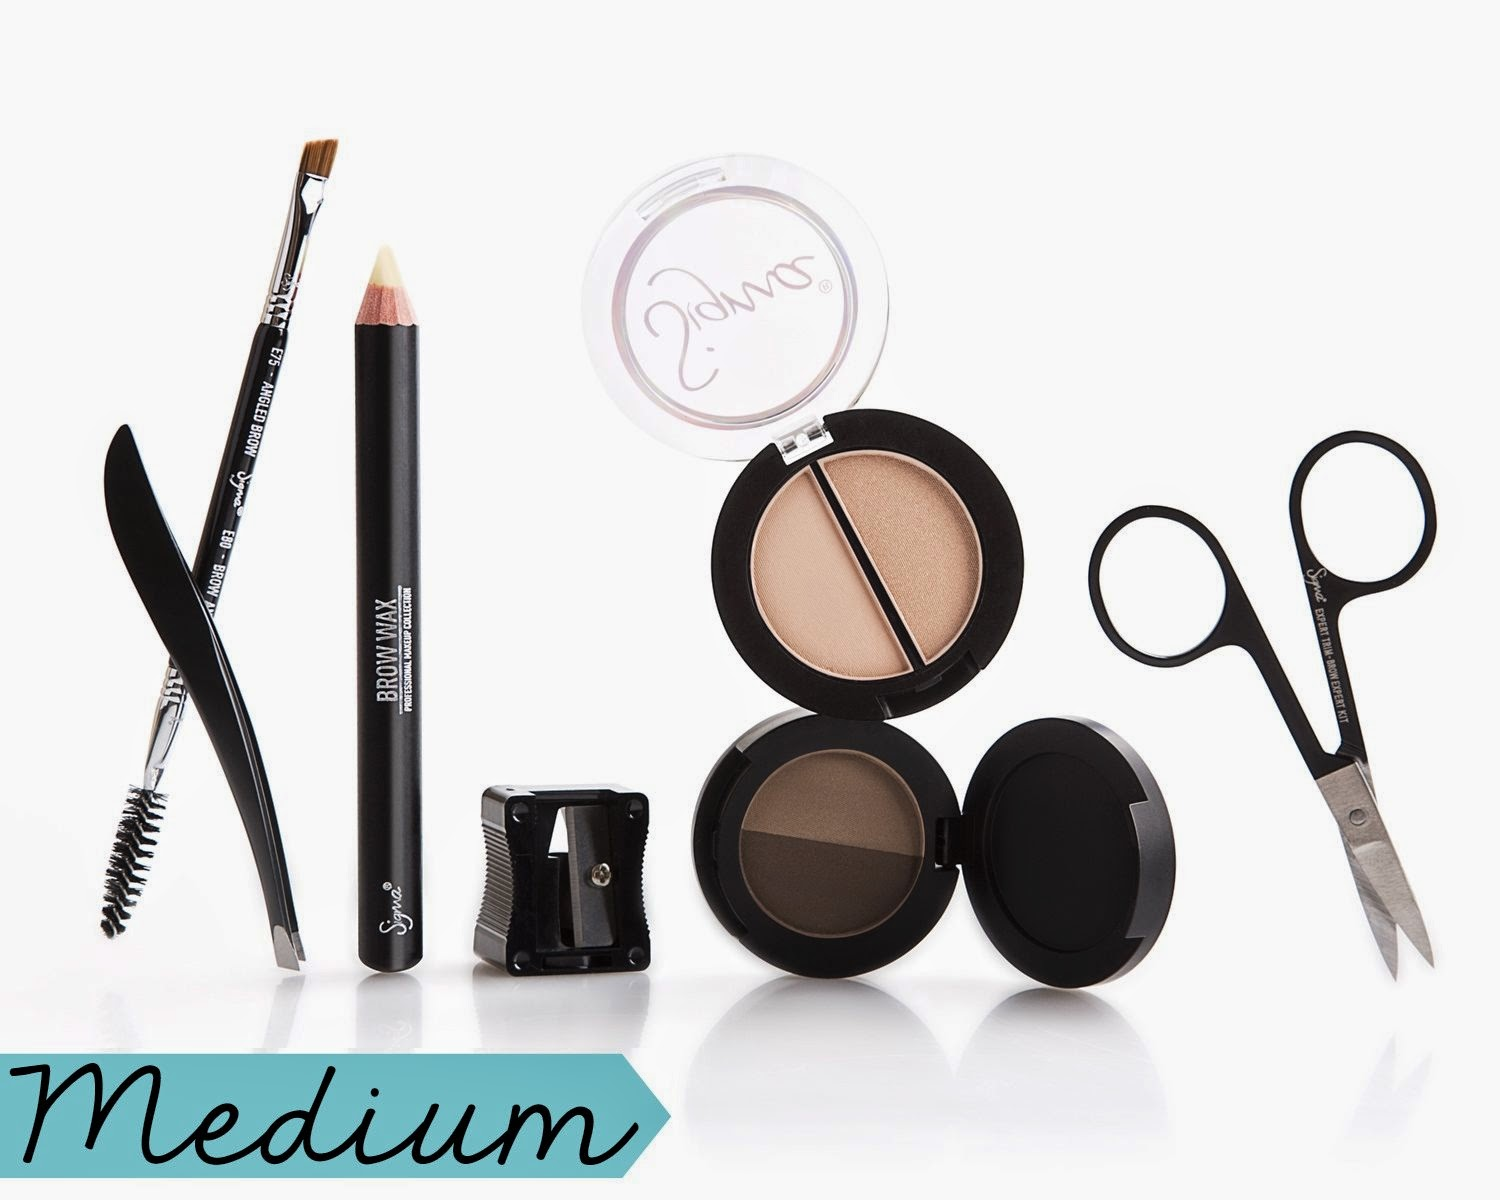 Sigma Brow Expert Kit in Medium — A Modern Mrs.